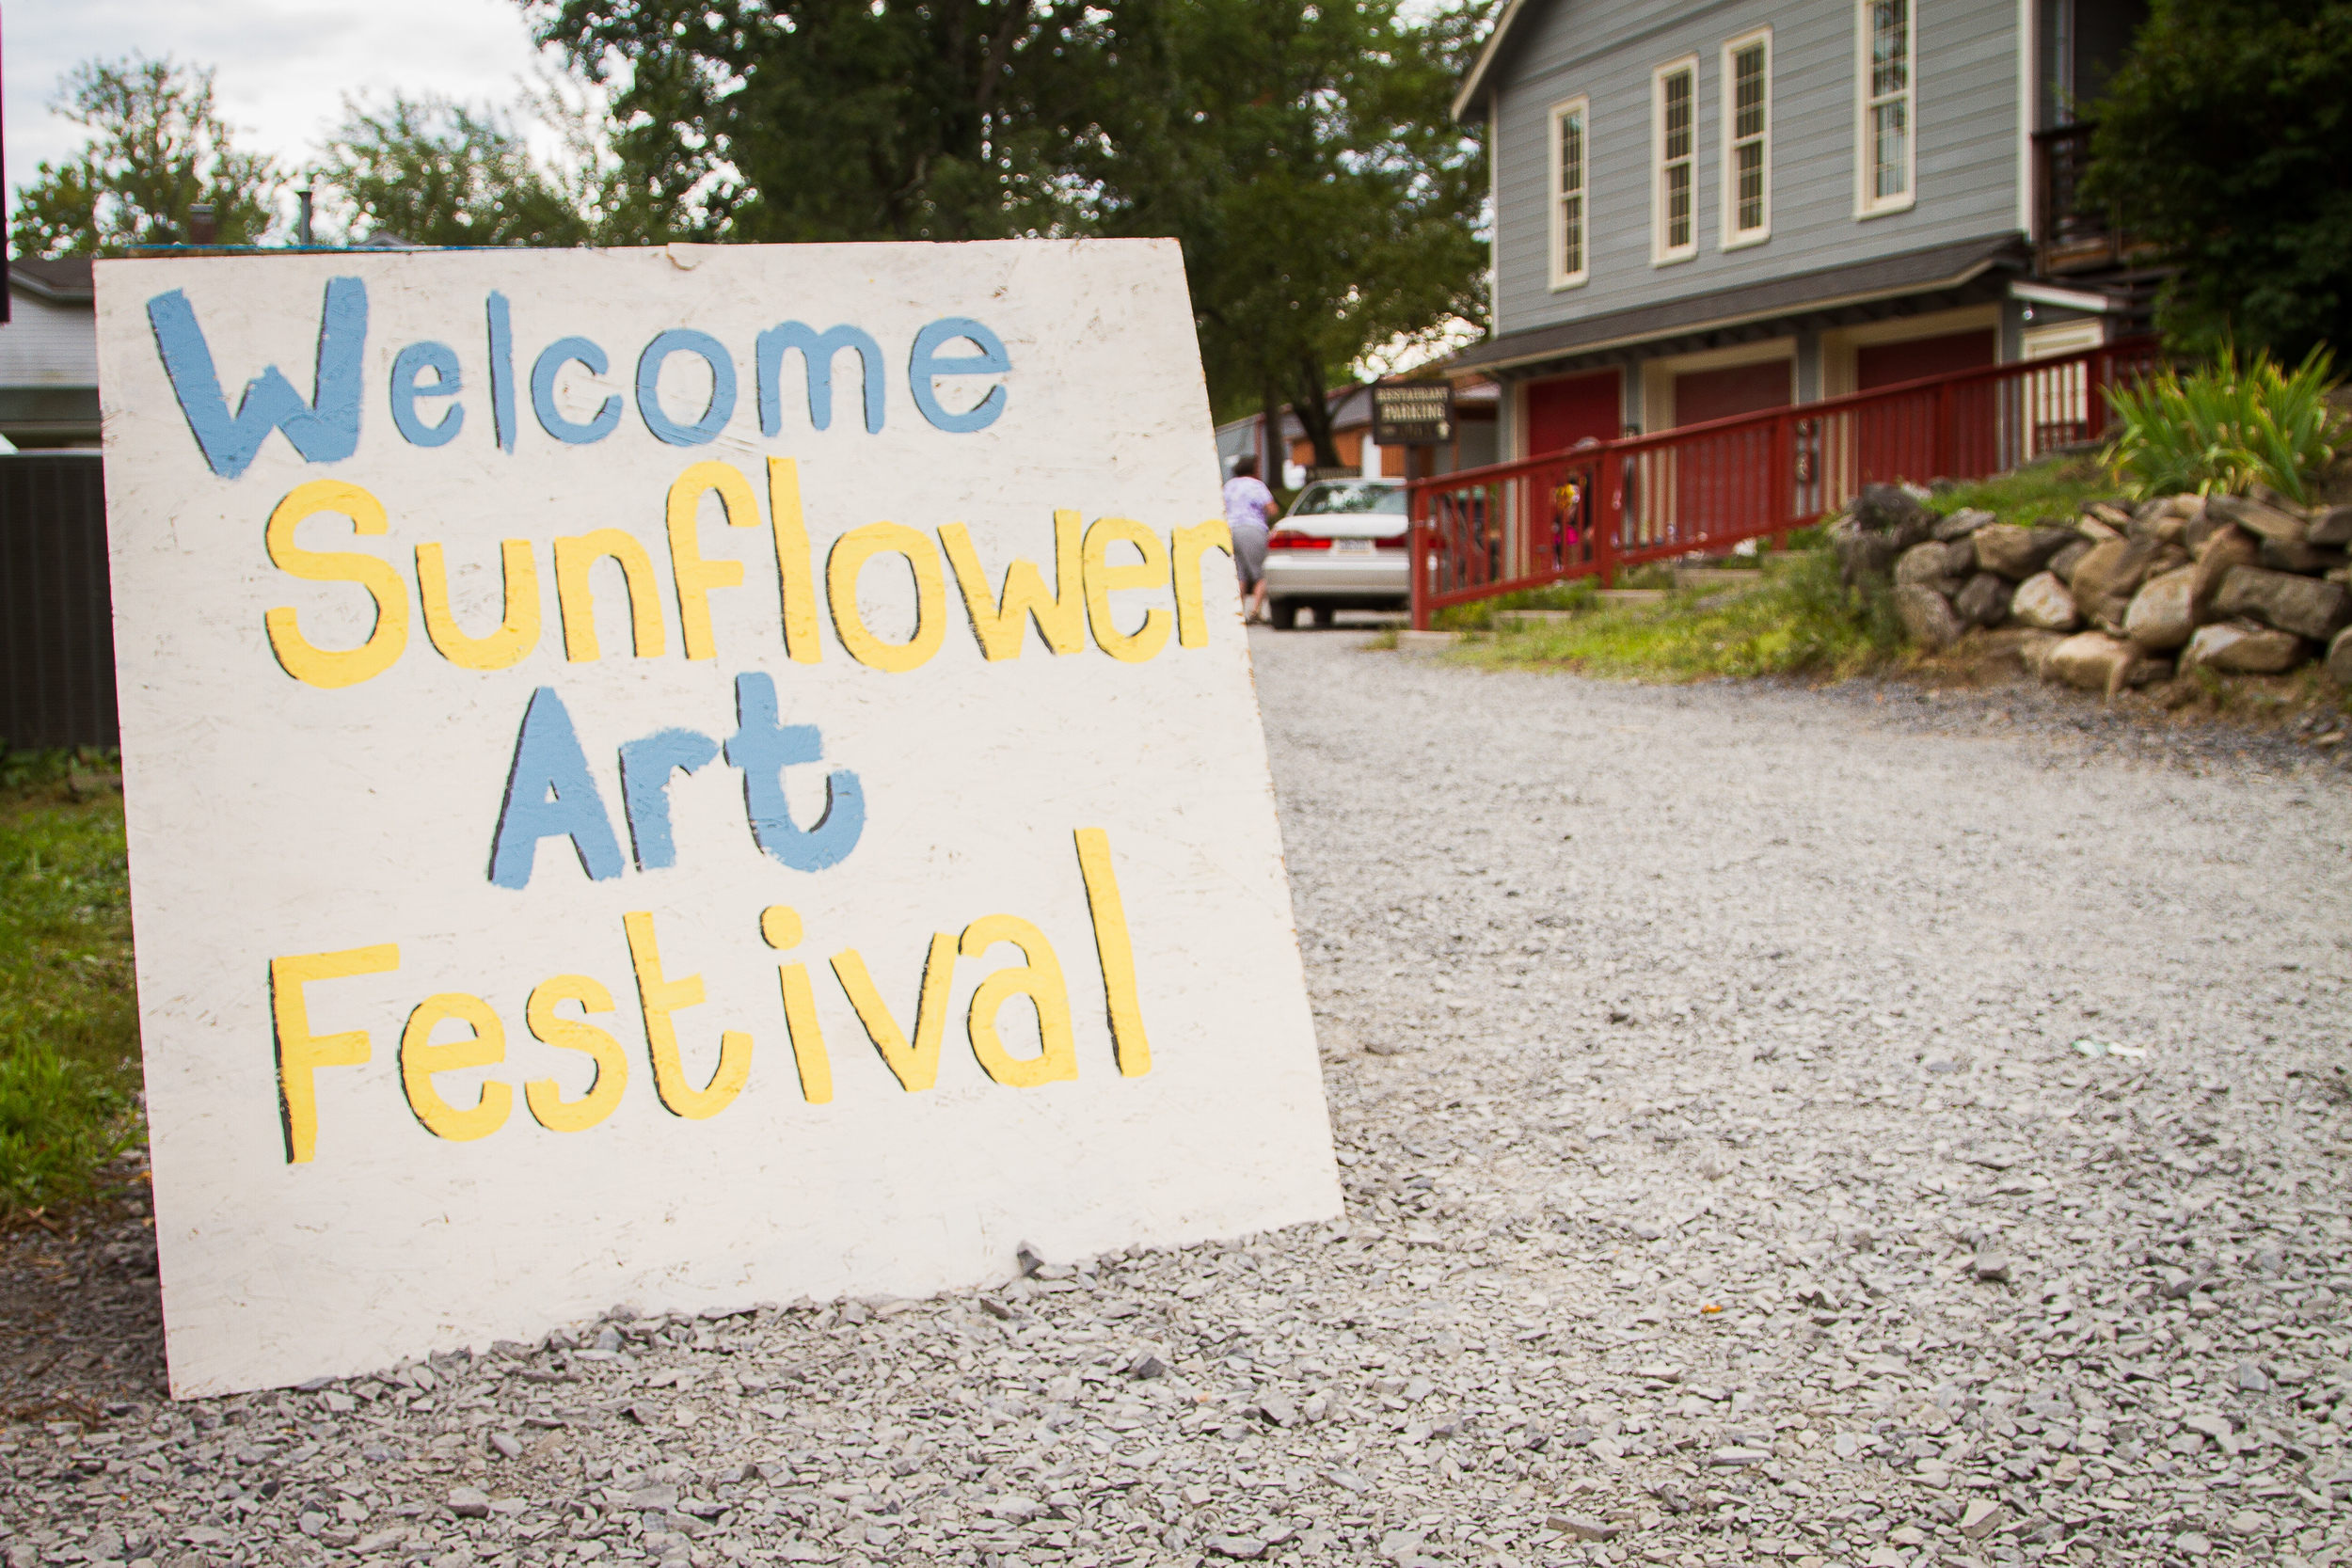 Sunflower_Art_Fest_CodyBuesing-146.jpg